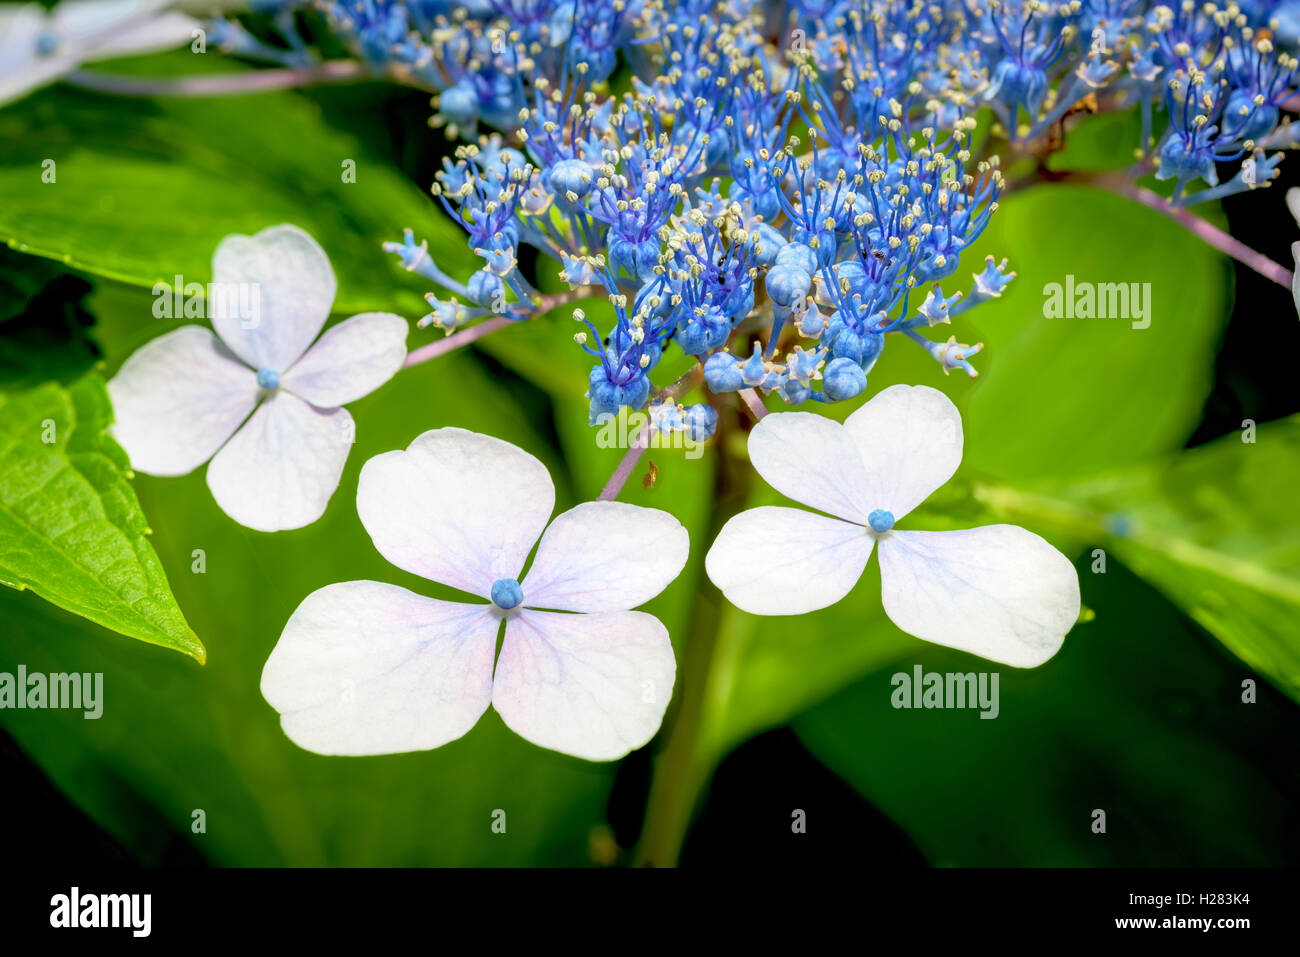 Shukkeien garden stock photos shukkeien garden stock images alamy unique and beautiful flower that is blue and white stock image izmirmasajfo